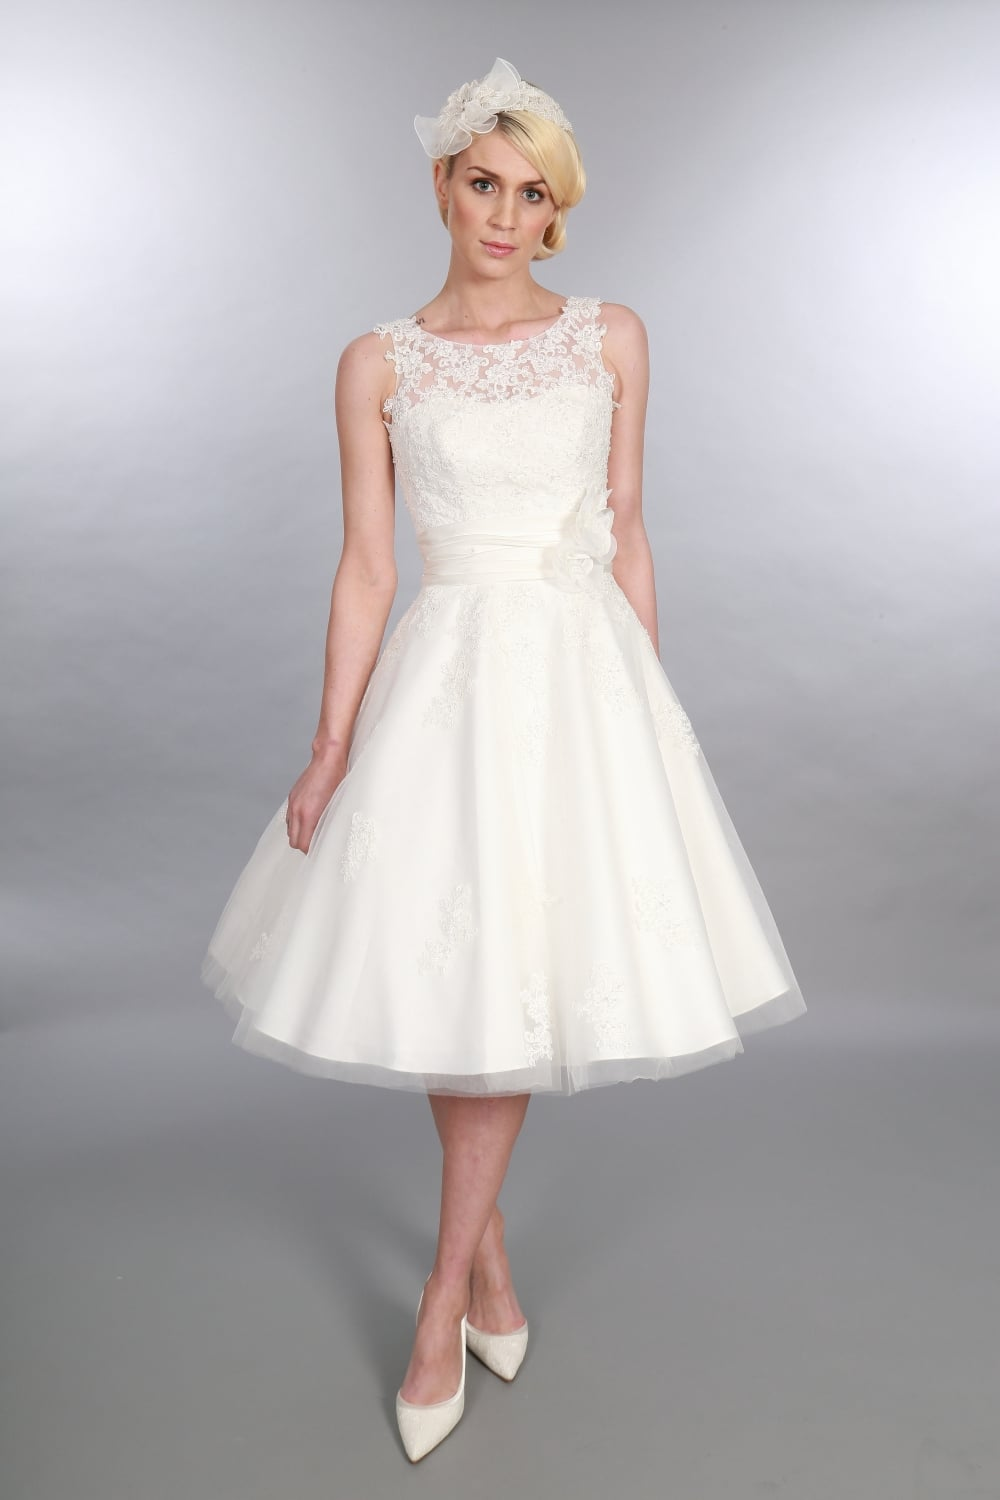 Anara Lace Tea Length 1950s Short Wedding Dress